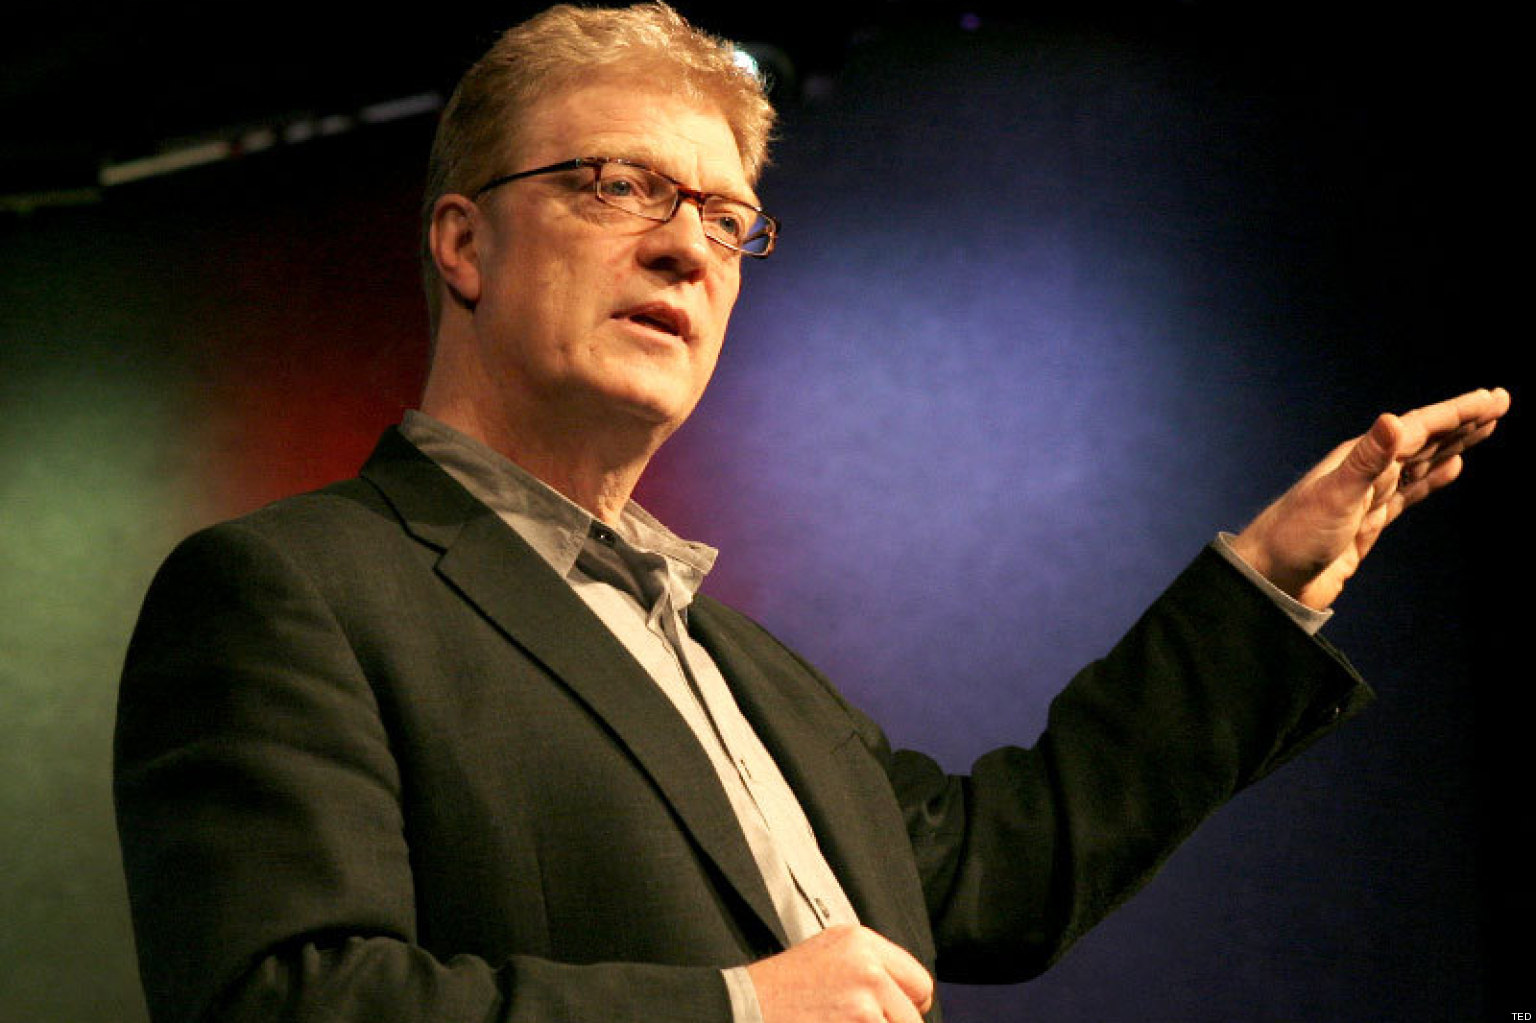 'Schools are still killing creativity' says Sir Ken Robinson